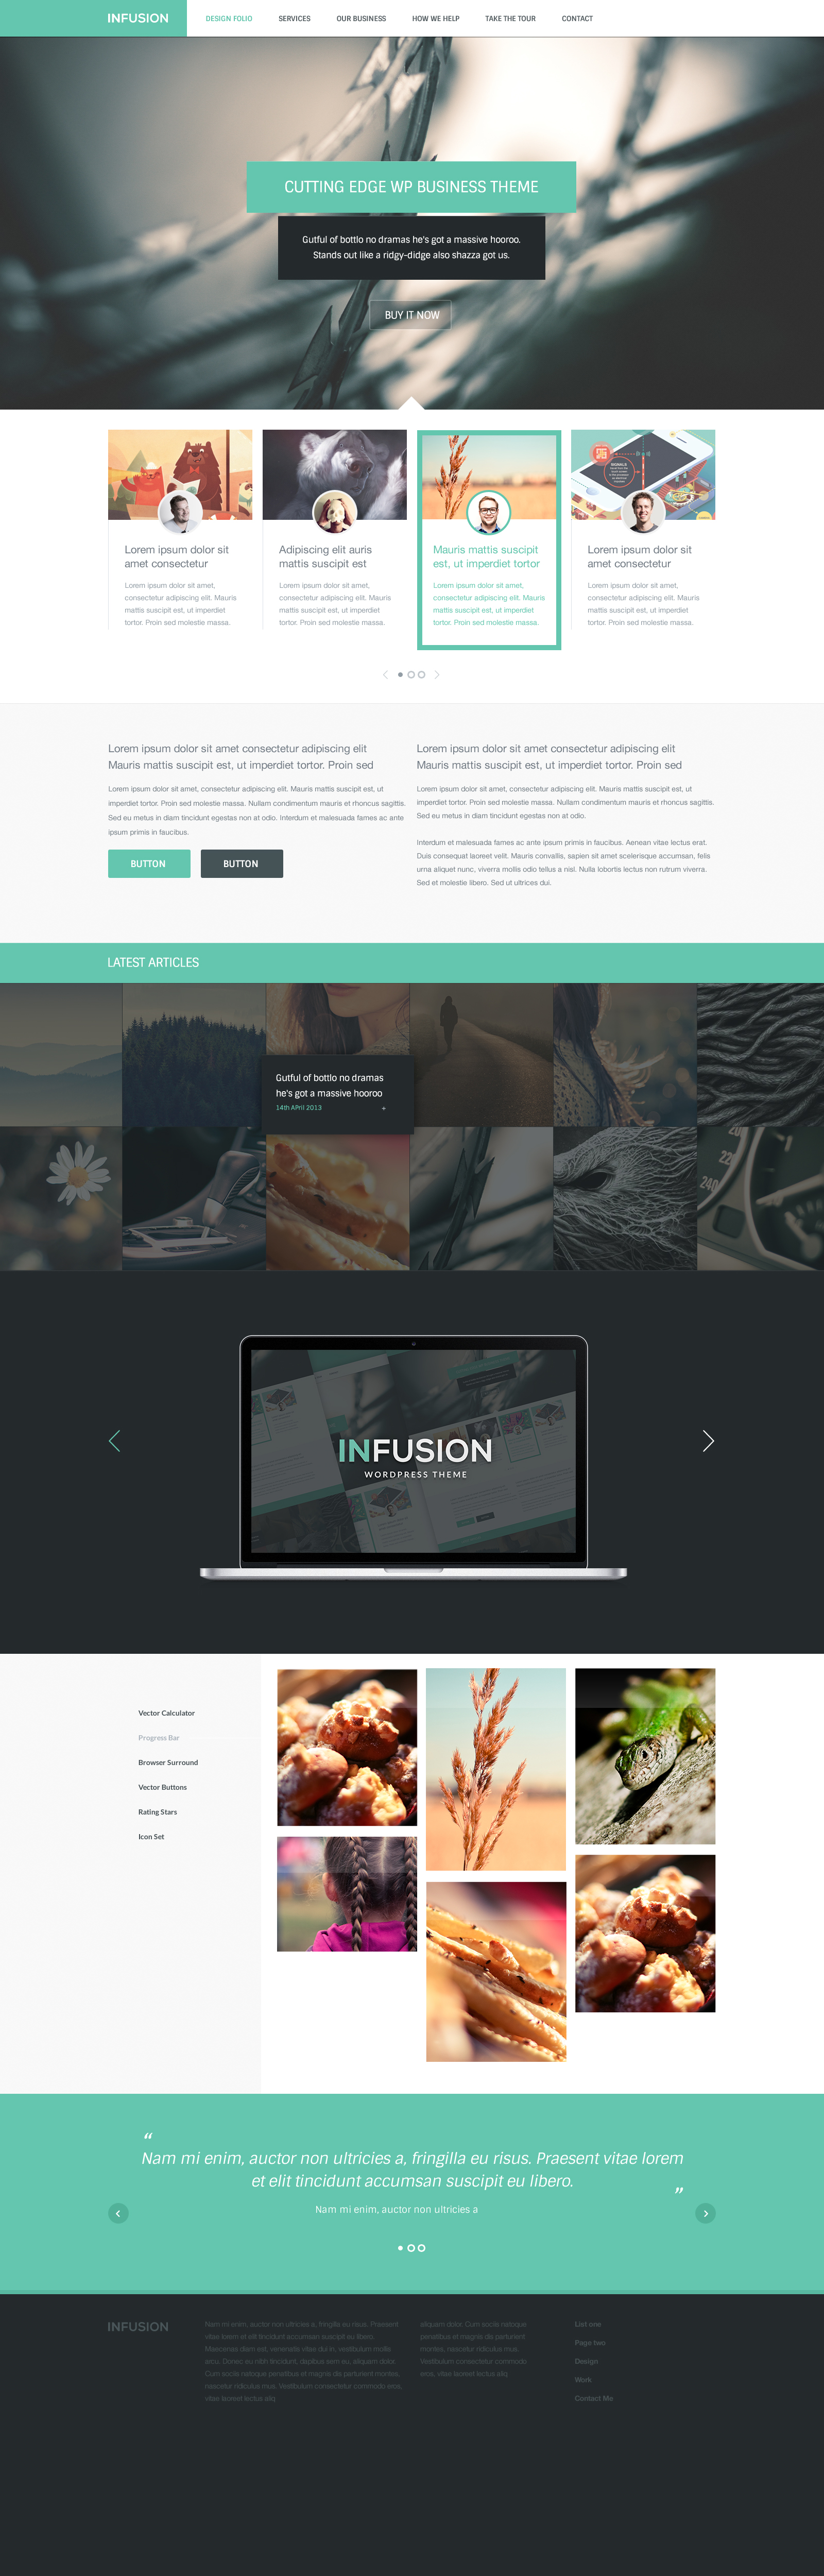 Infusion FREE Modern Website Template Photoshop PSD